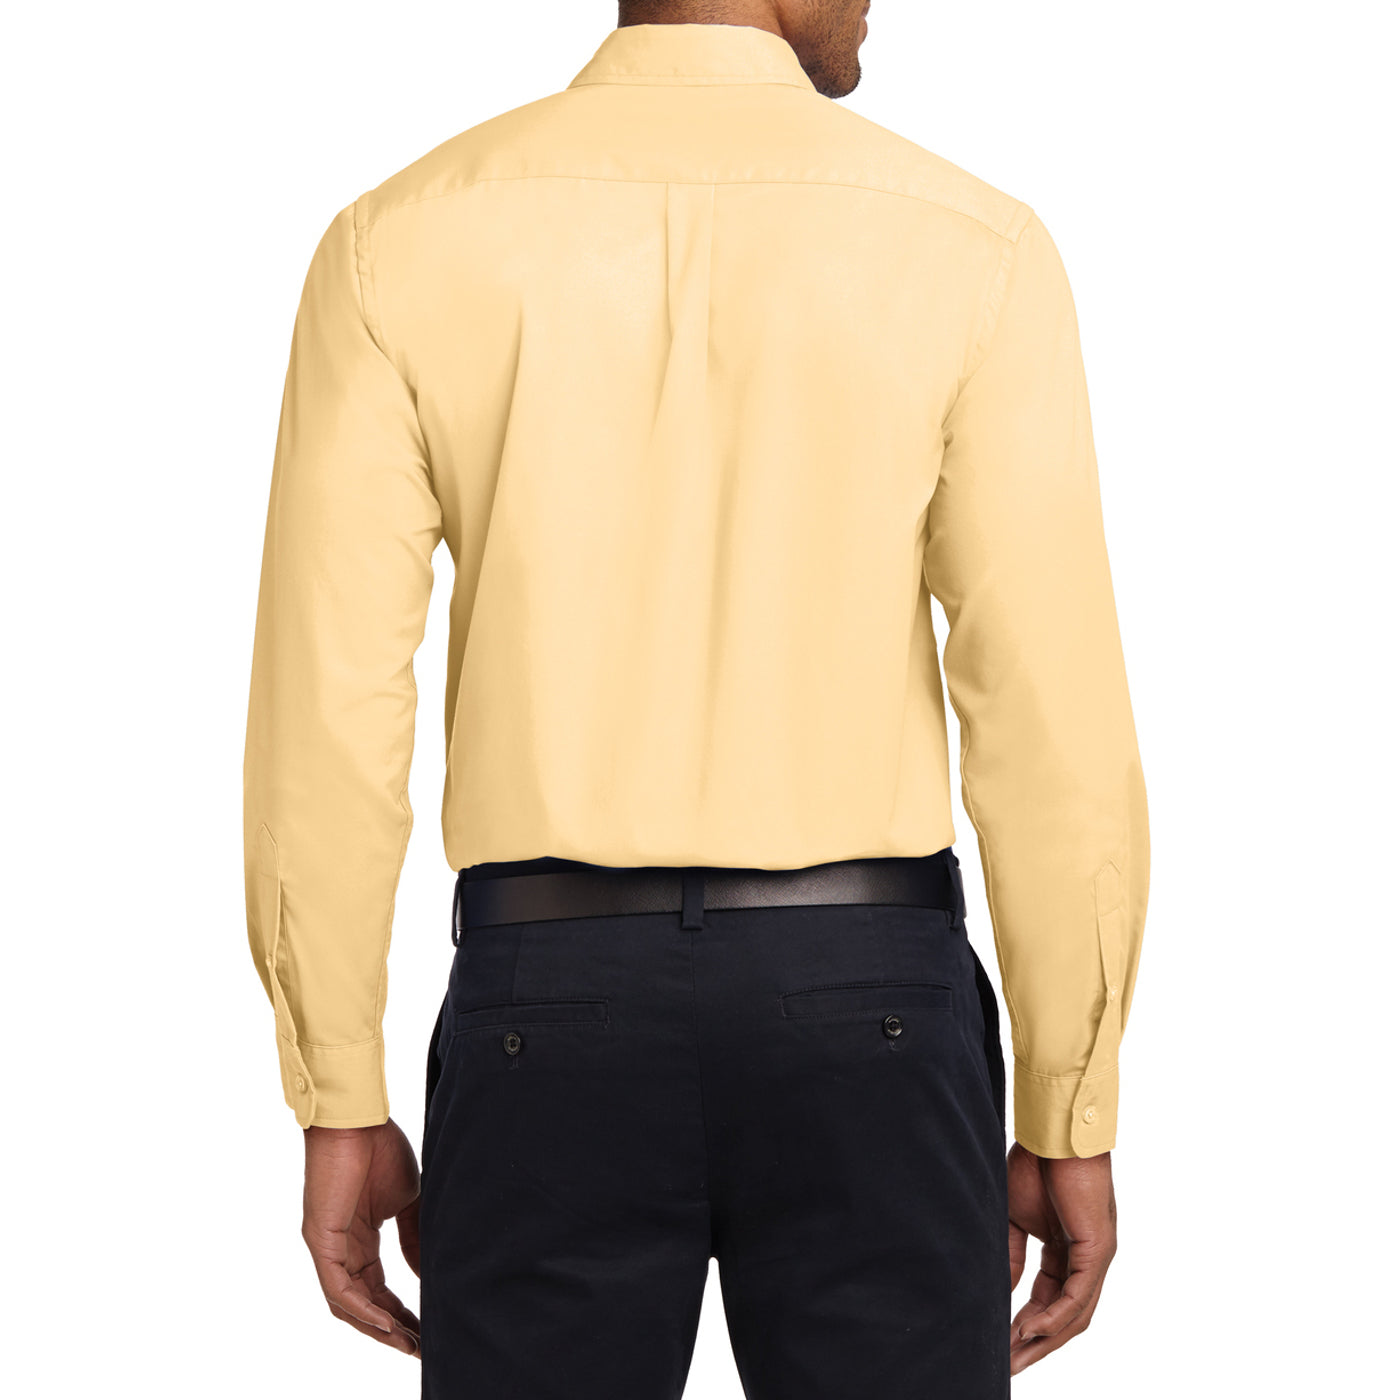 Men's Long Sleeve Easy Care Shirt - Yellow - Back